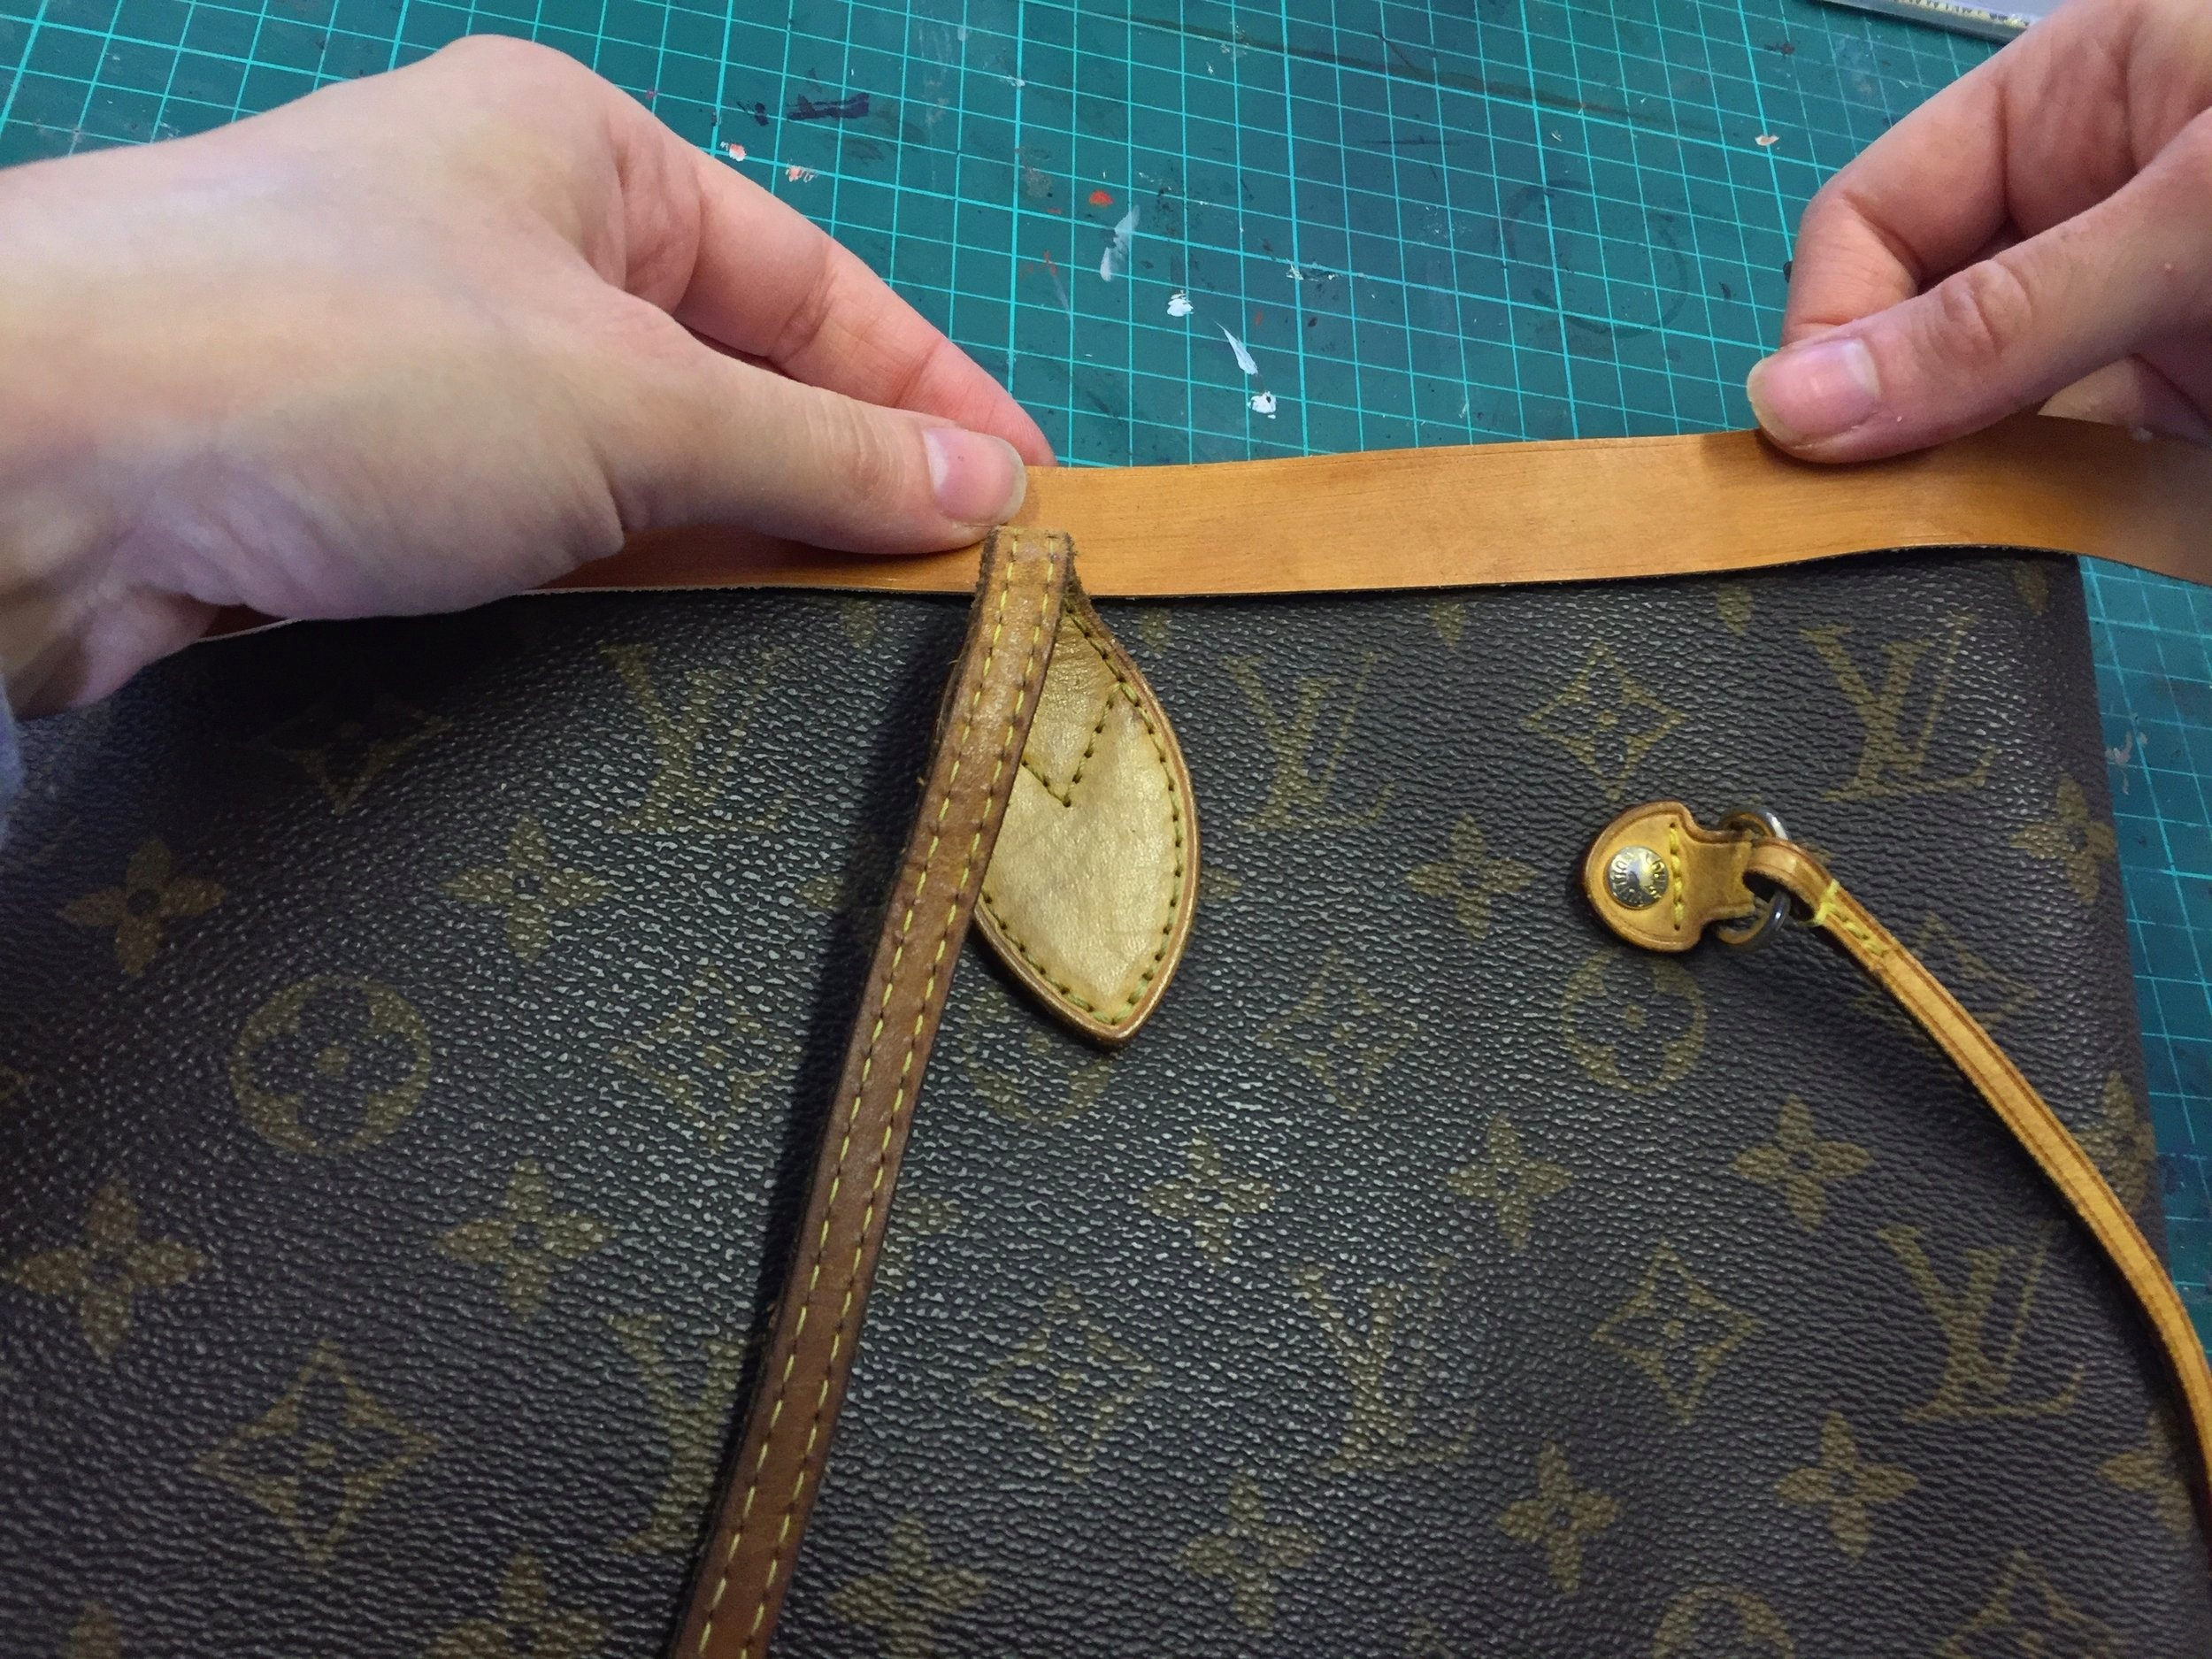 Glueing The Leather To The Bag